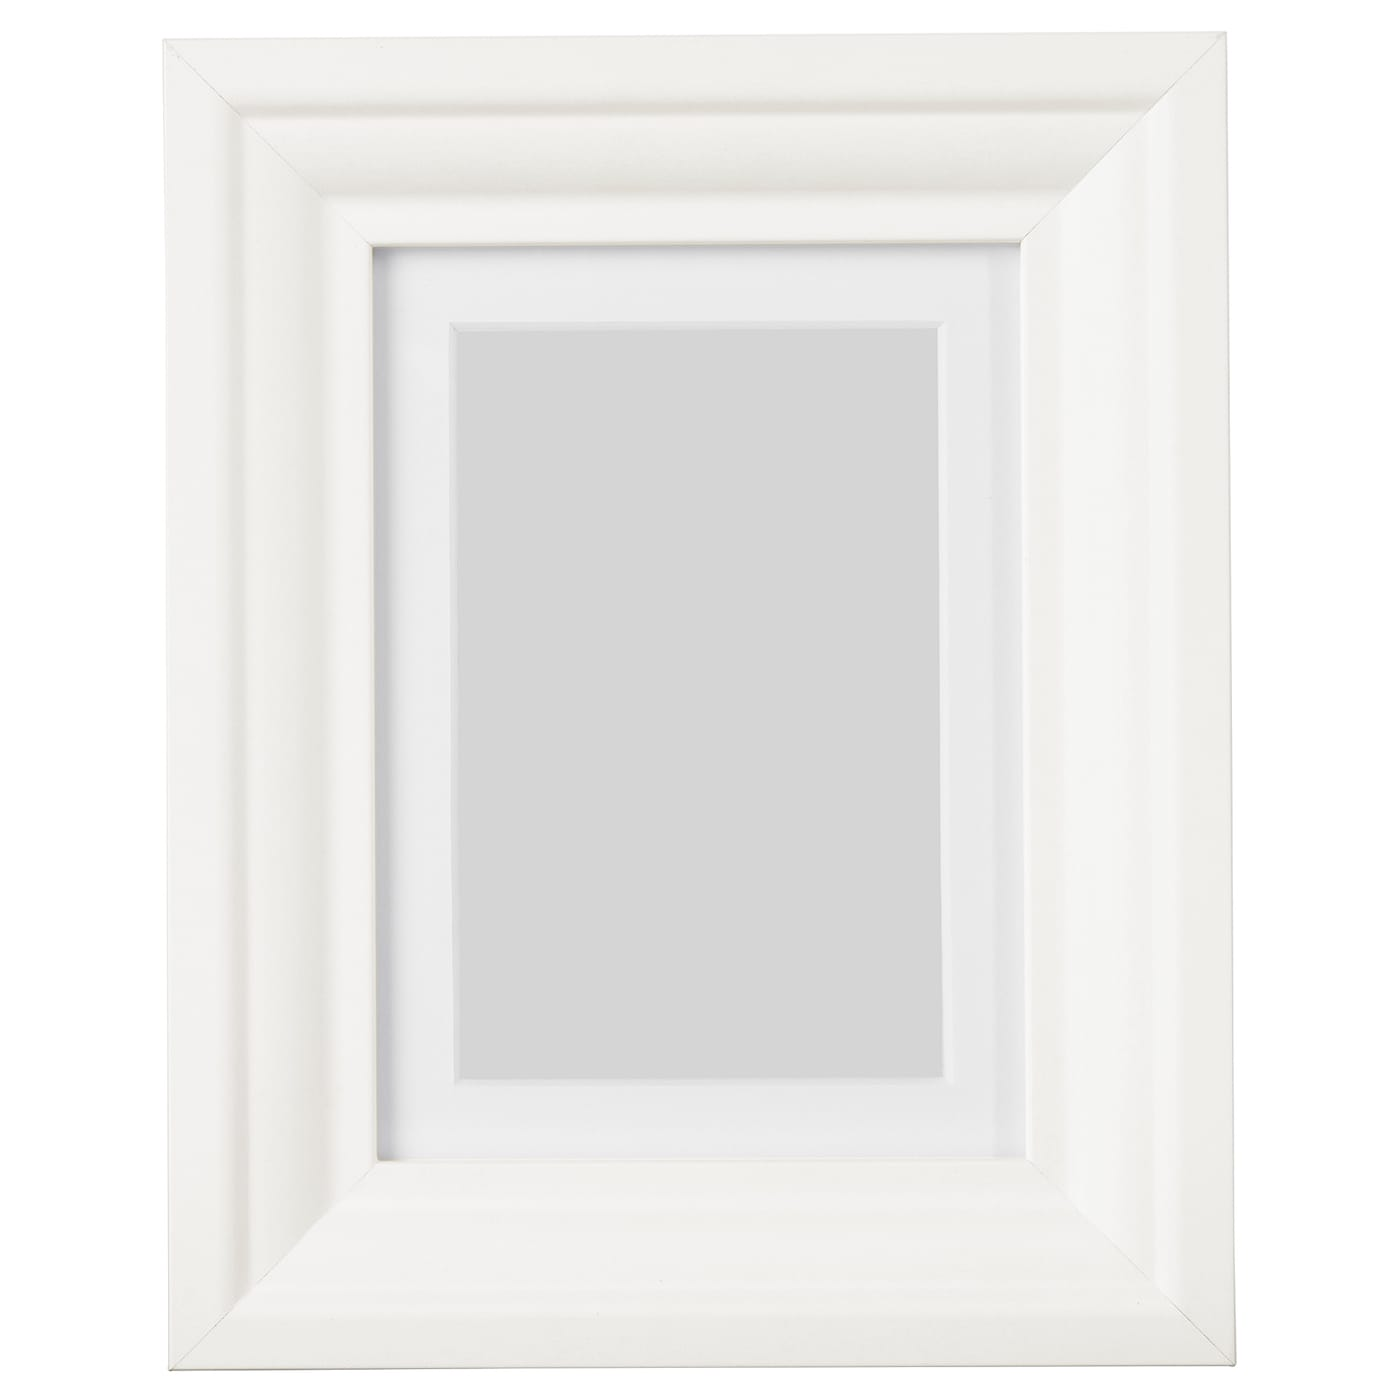 IKEA EDSBRUK frame Can also be used without mount, to take a larger picture.